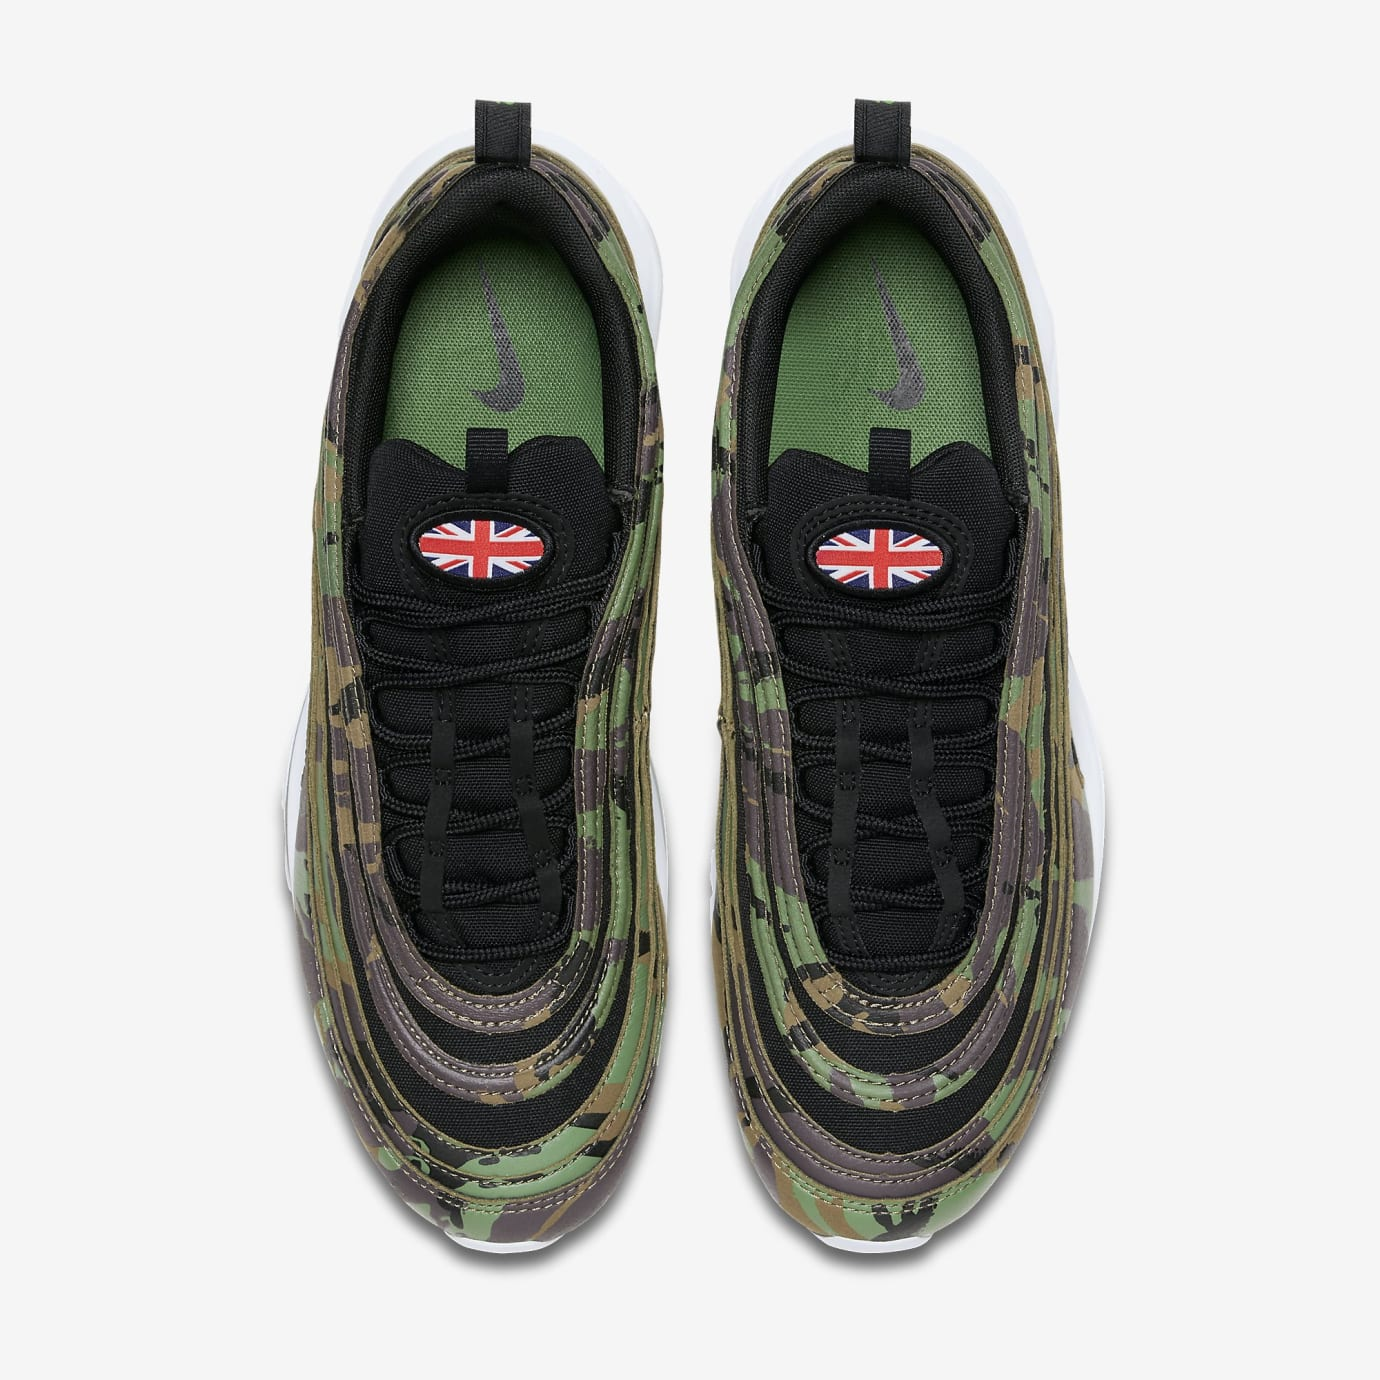 Nike Air Max 97 'Country Camo' UK AJ2614-201 (Top)